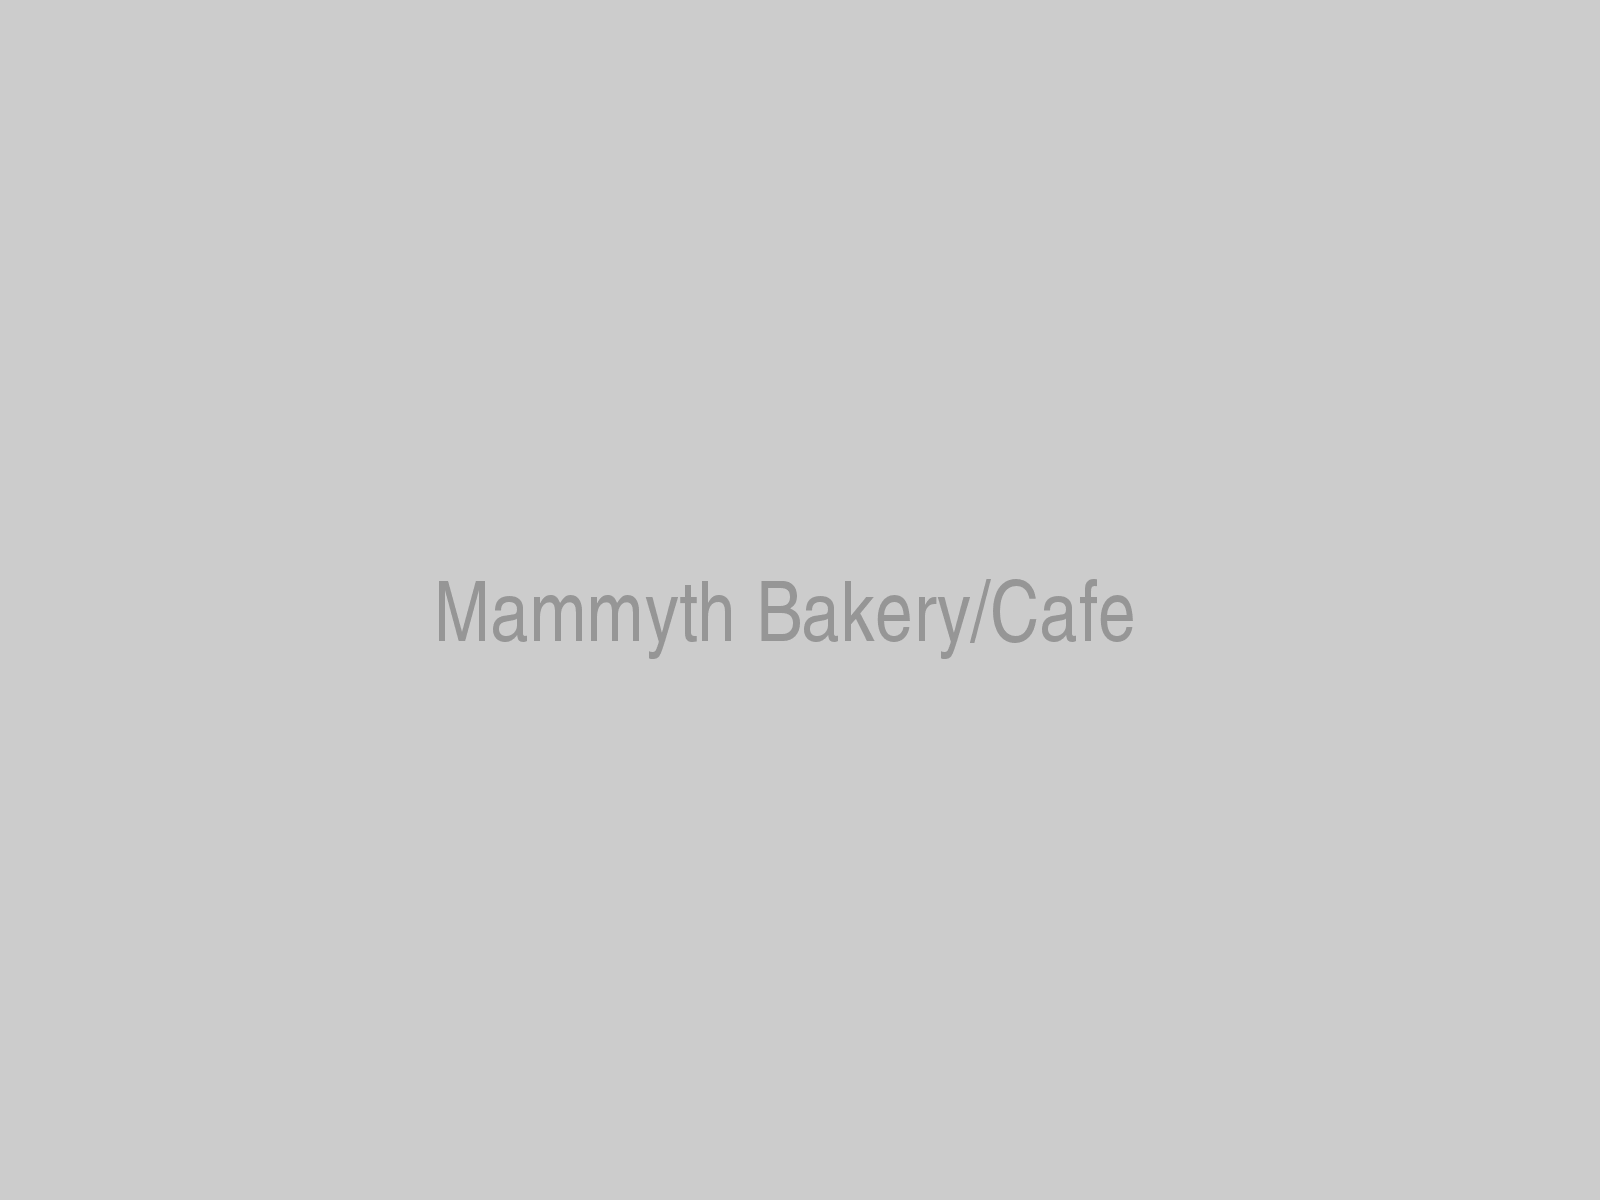 Mammyth Bakery/Cafe